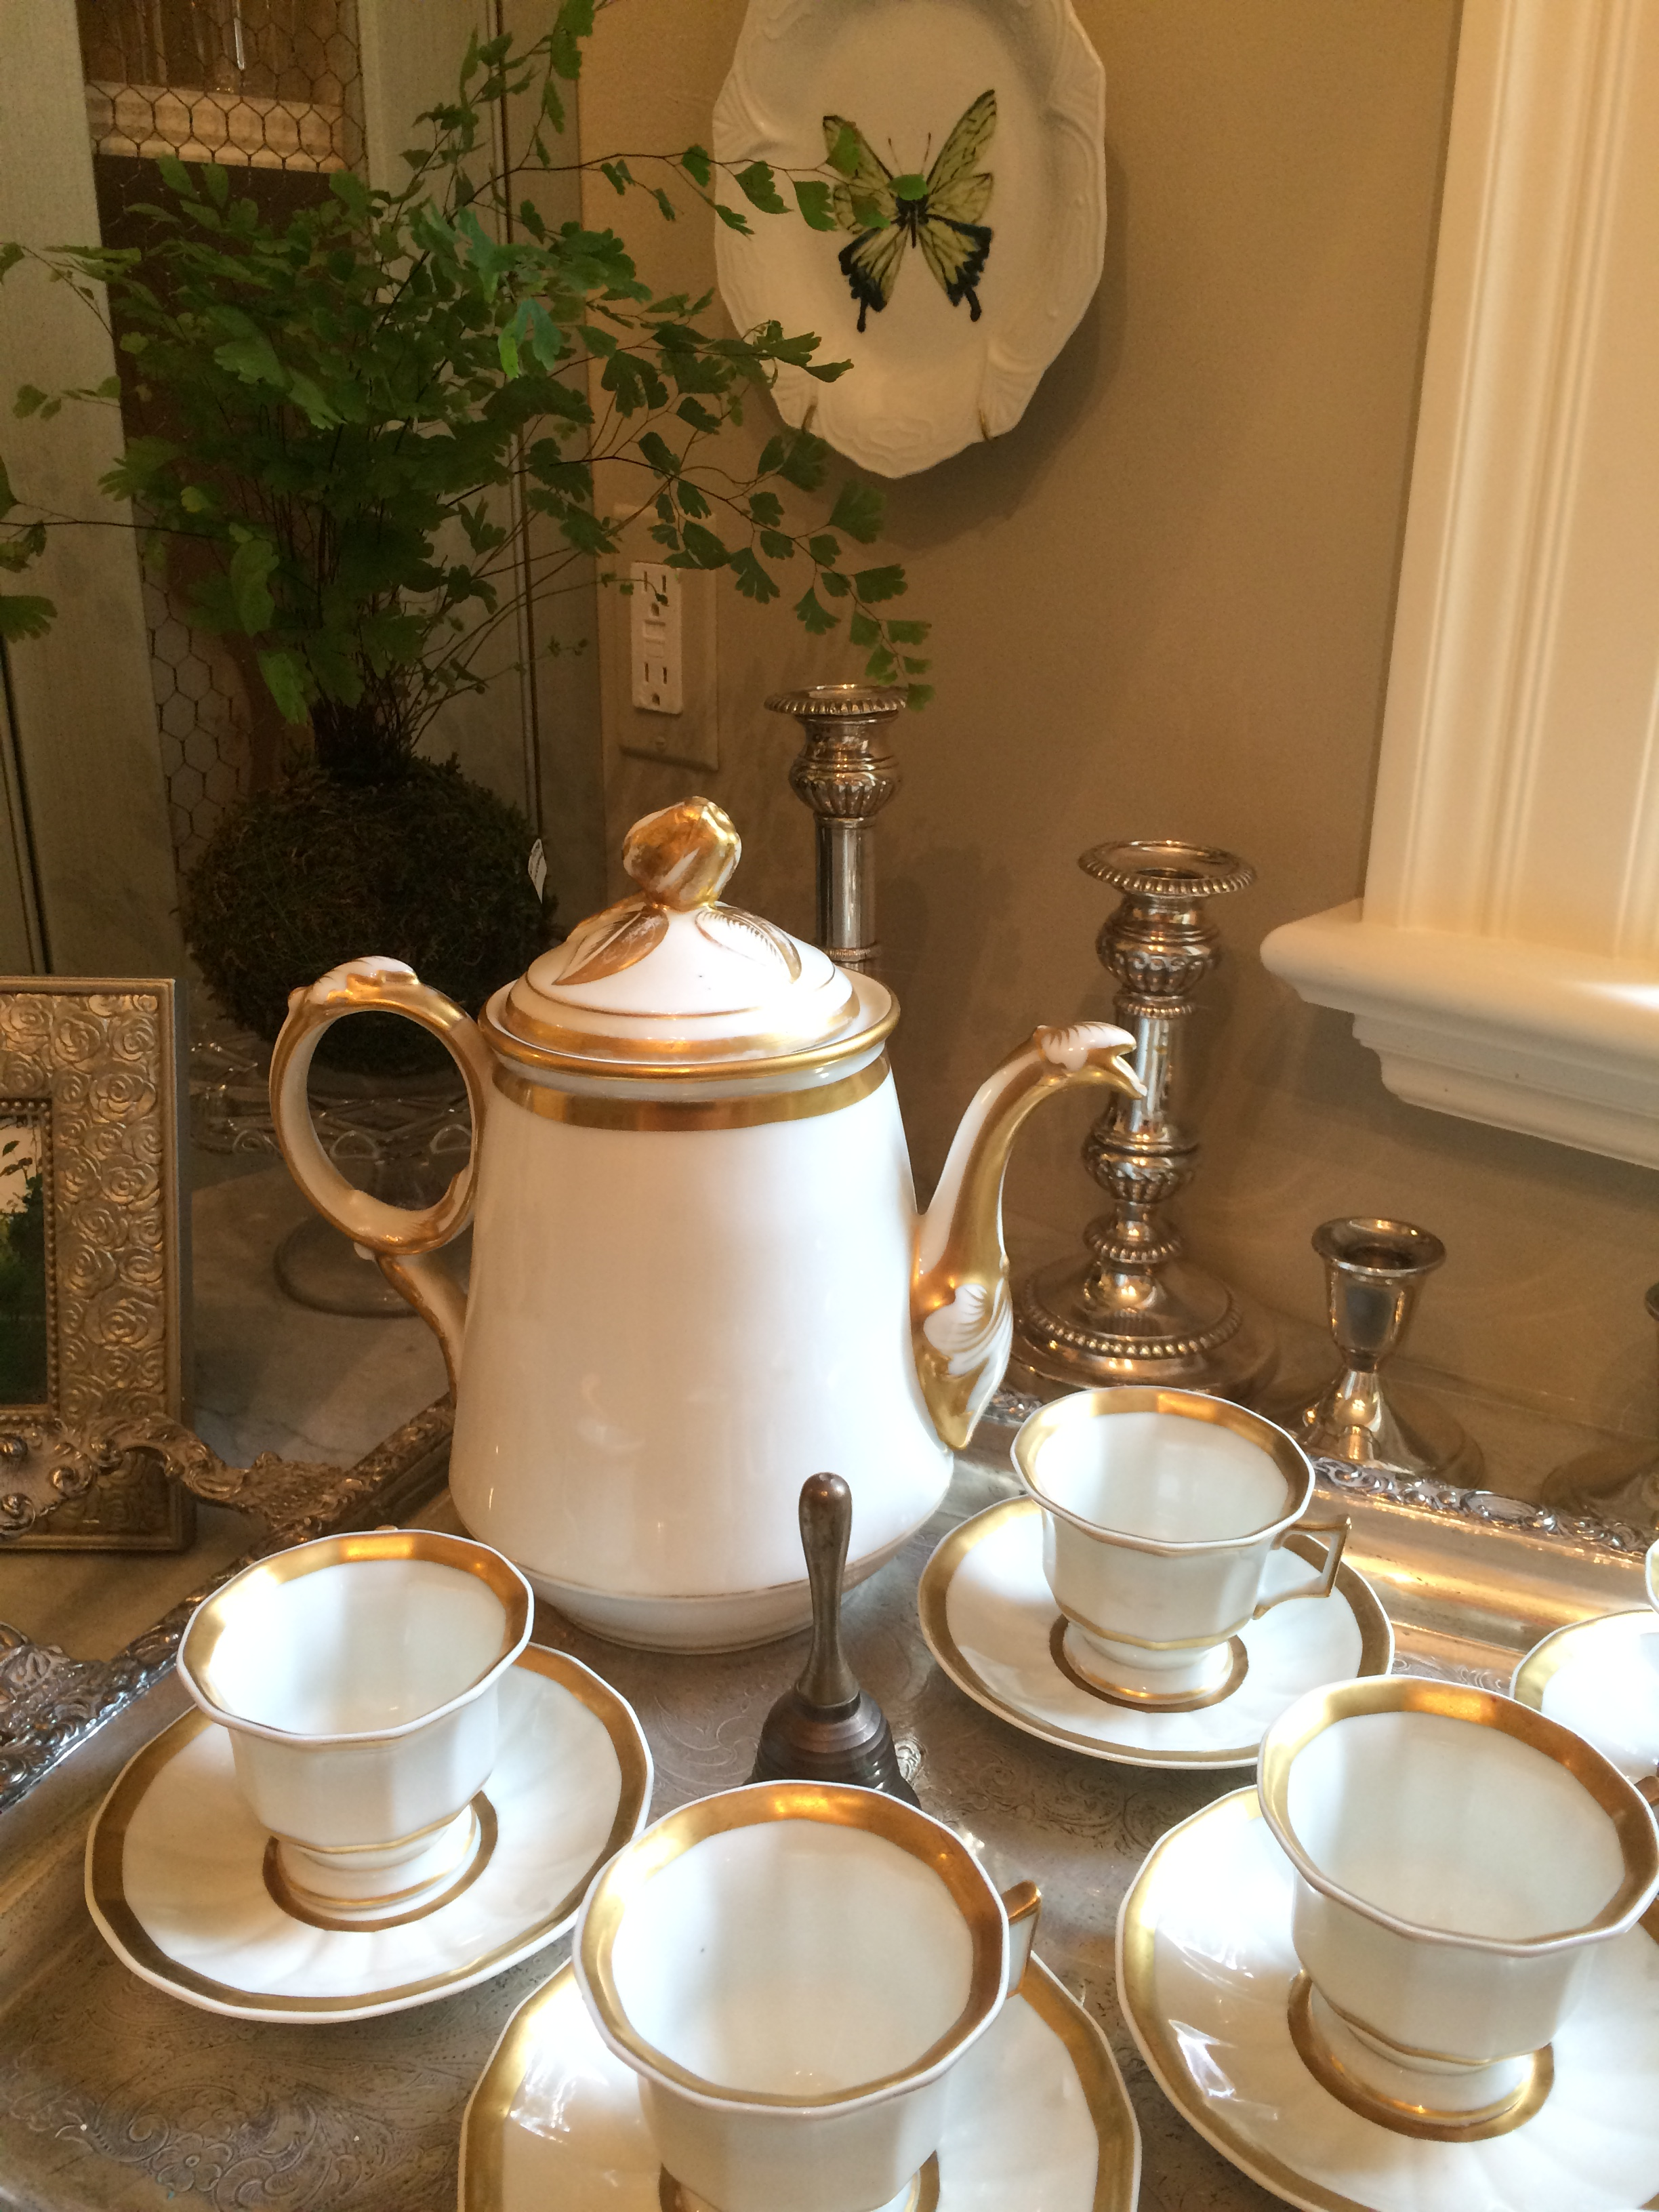 A tray of Limoge cups and a coffee pot, trayed up and ready to serve.